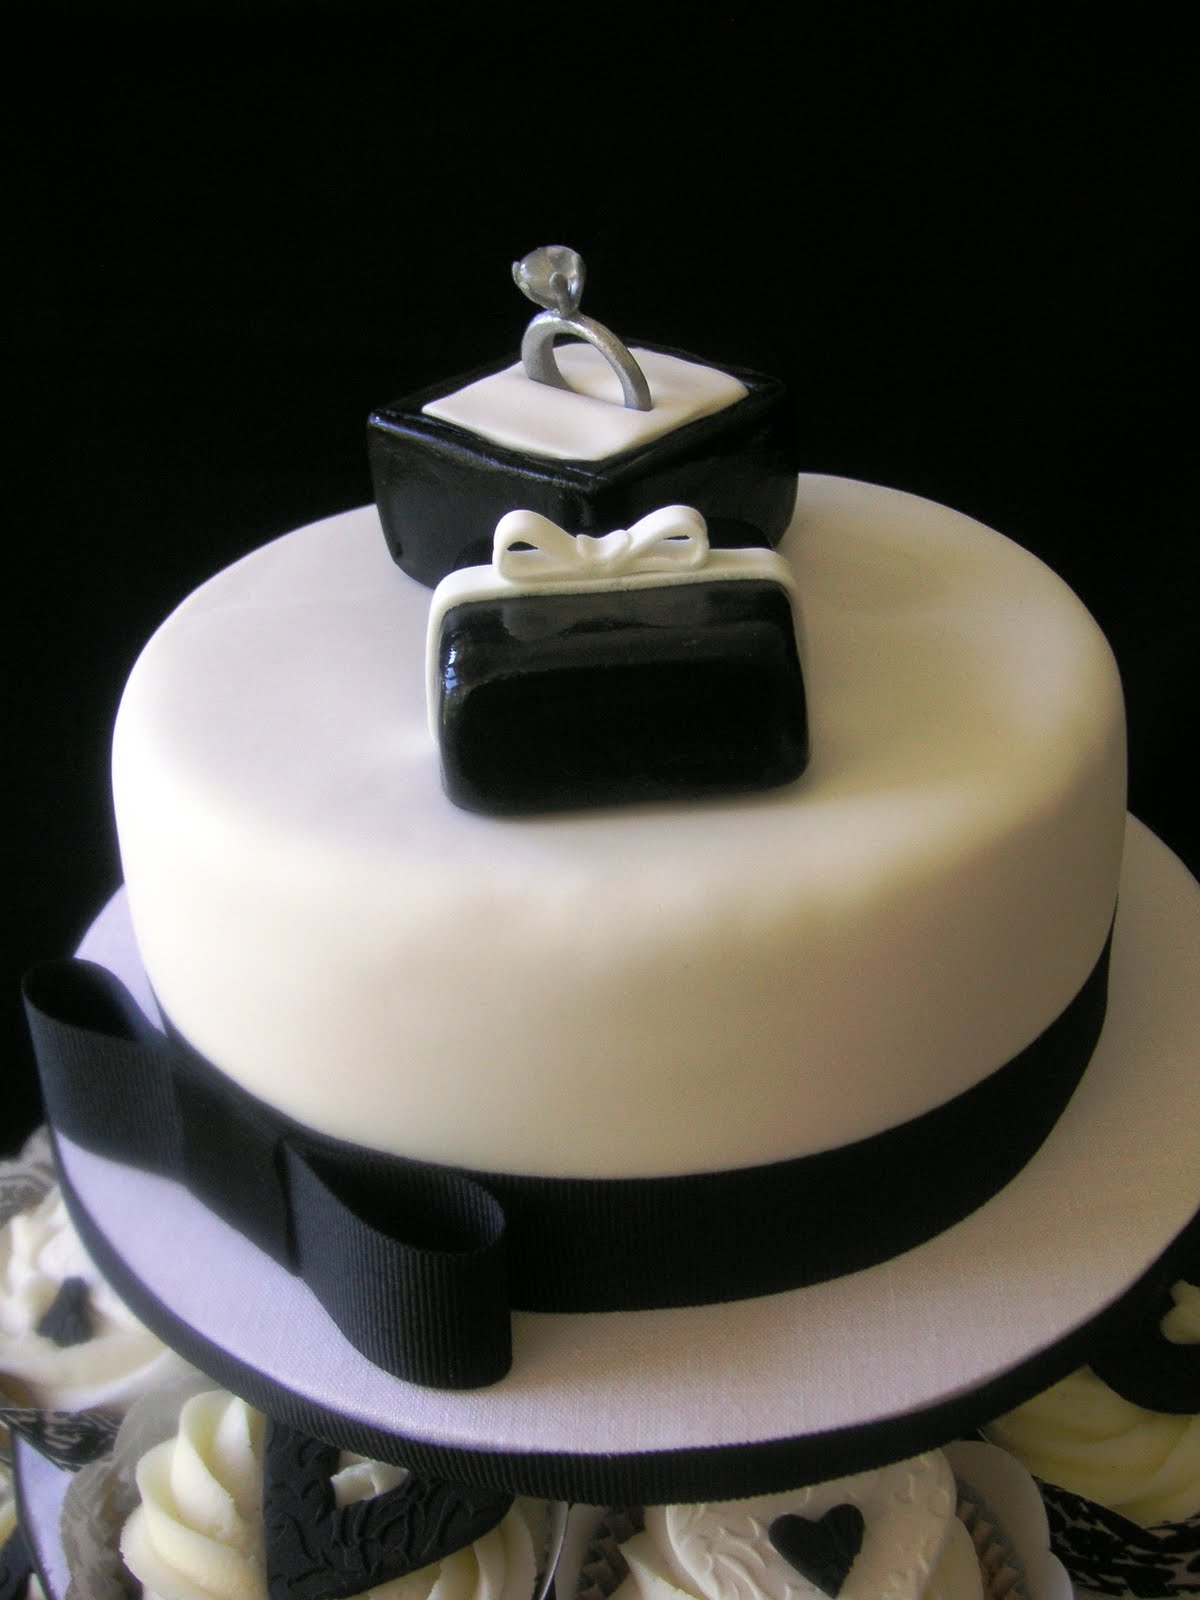 Cake Decorations For Engagement Cake : Just call me Martha: Black & white engagement